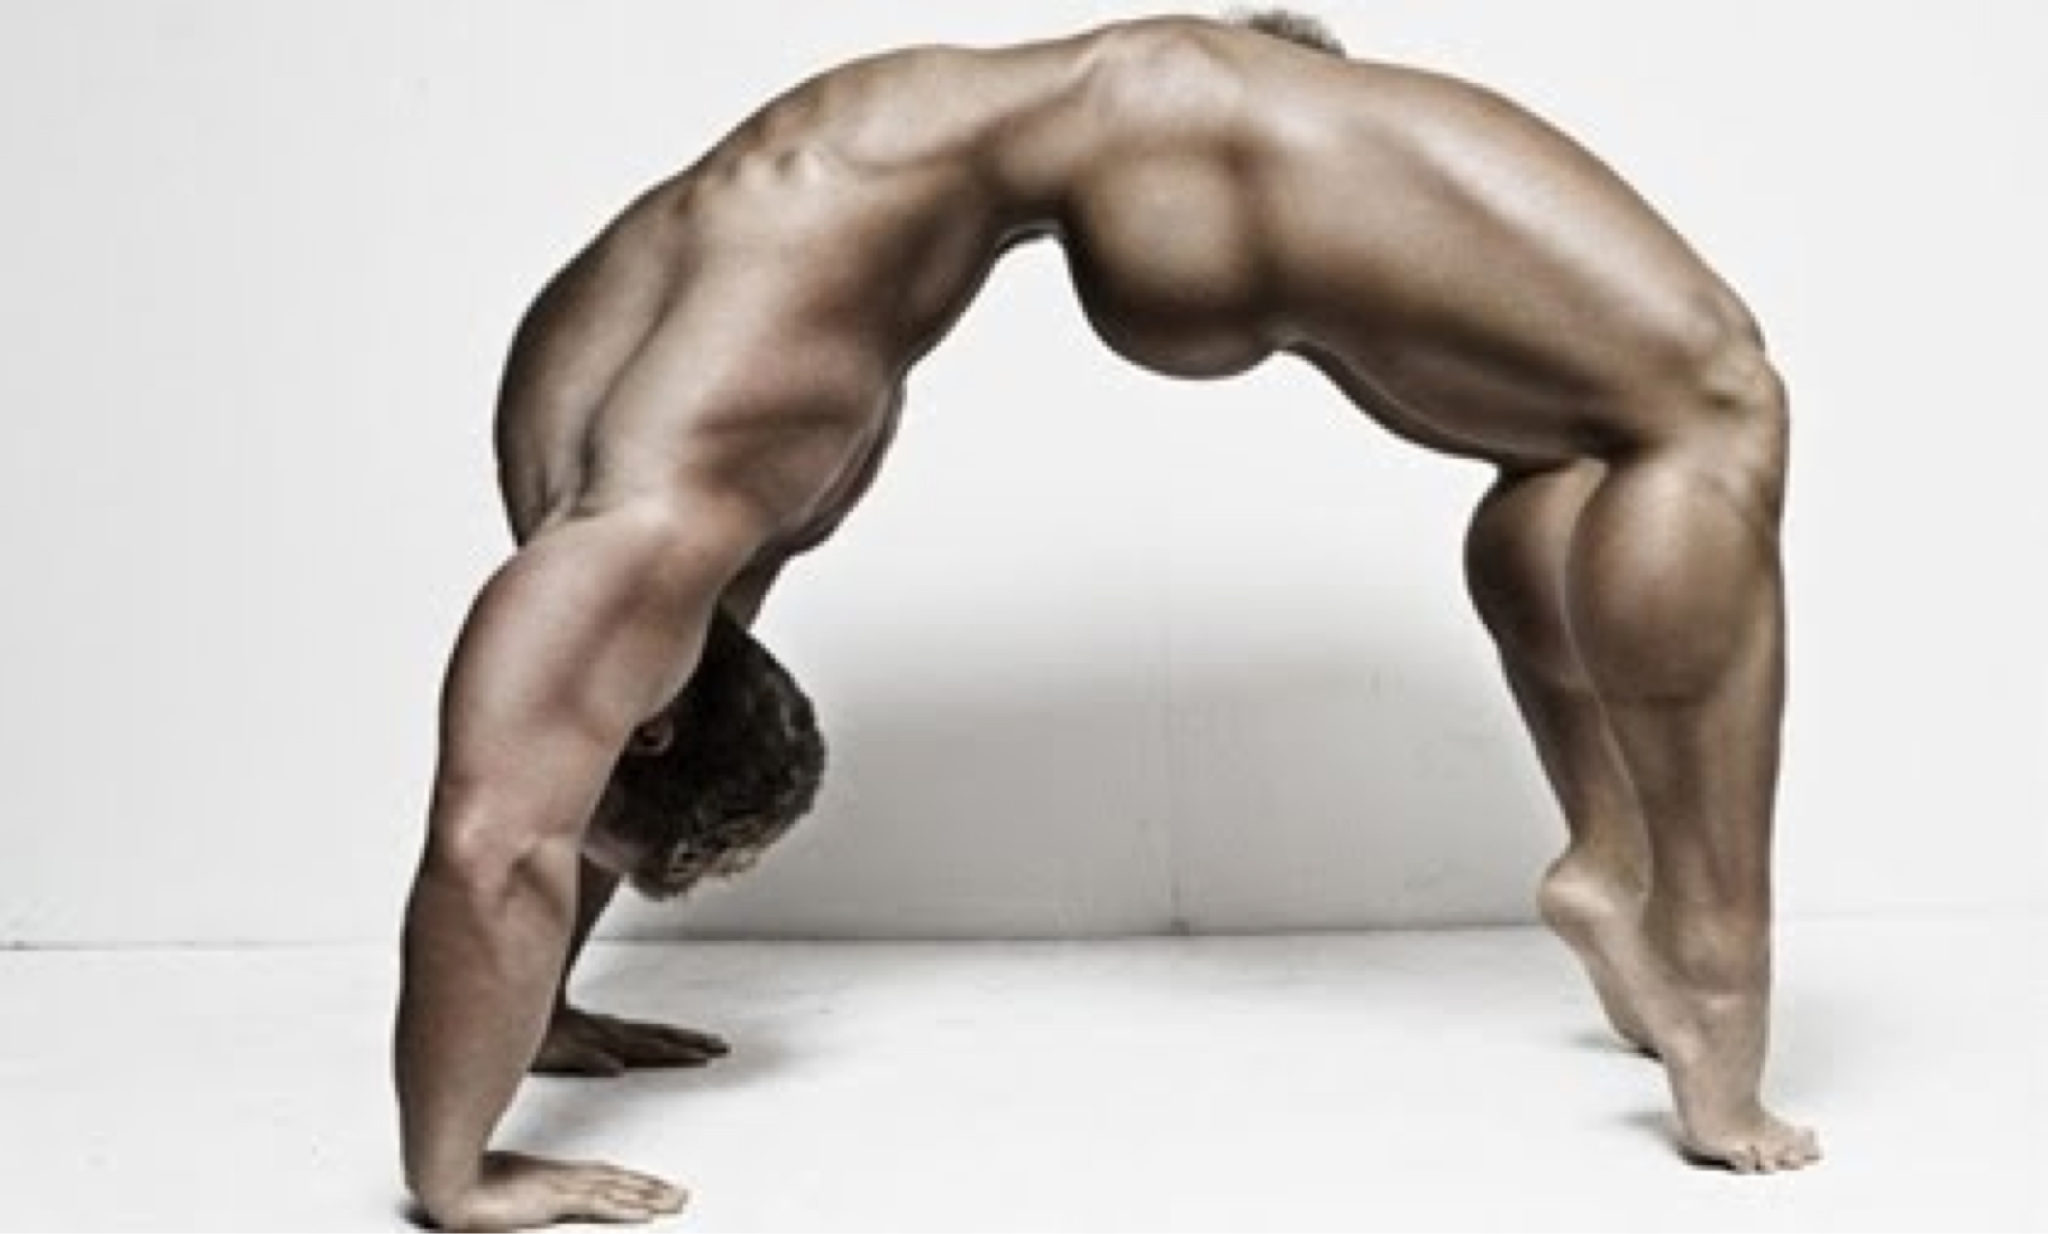 male Nude Yoga in NYC